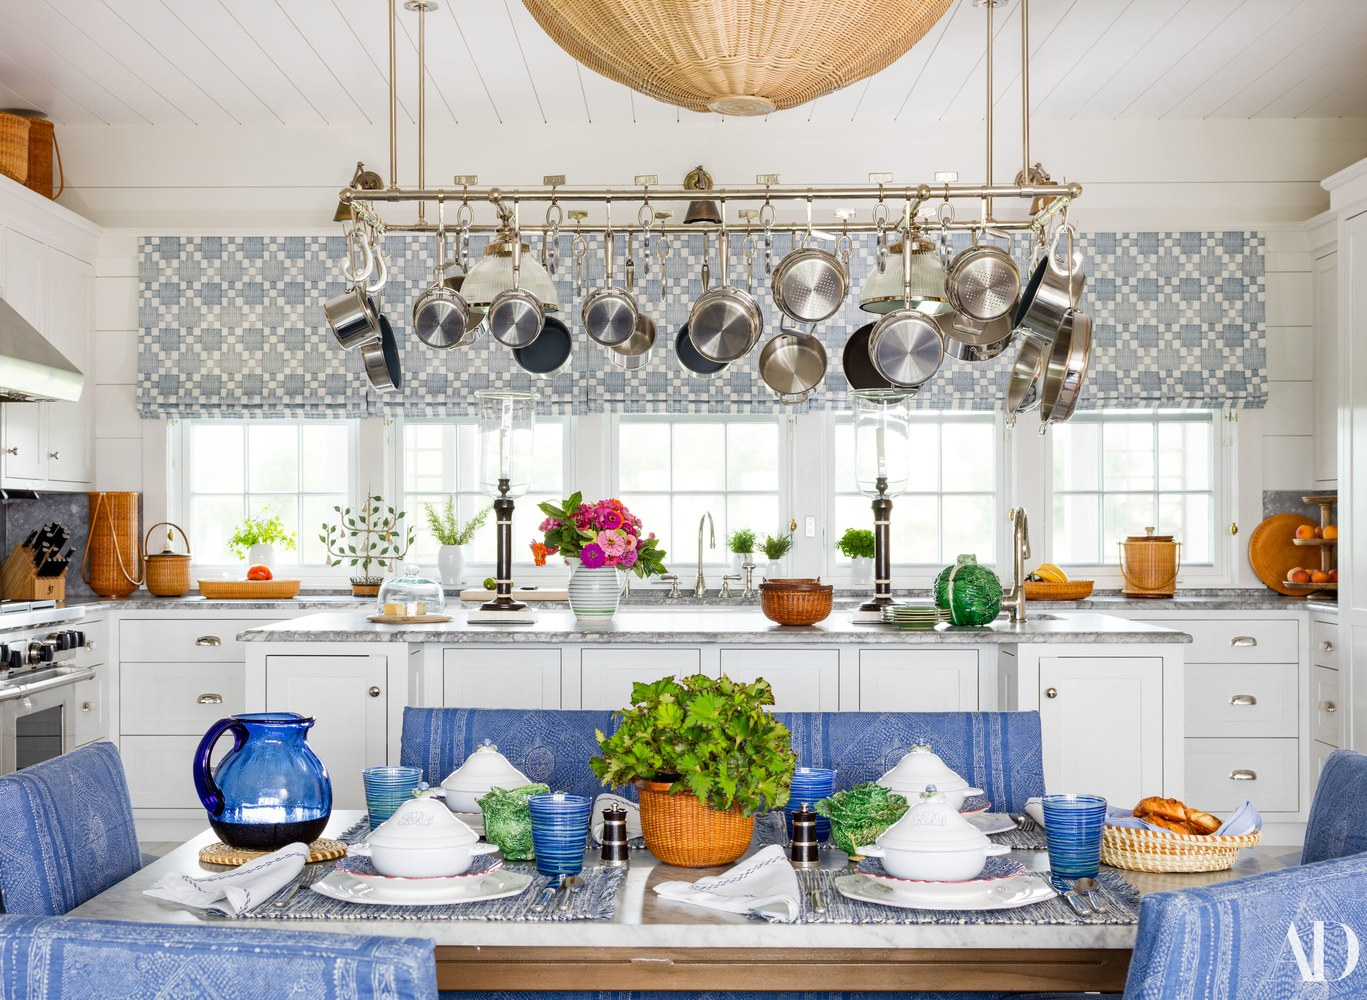 Charming and cheerfully designed Nantucket kitchen by Markham Roberts.